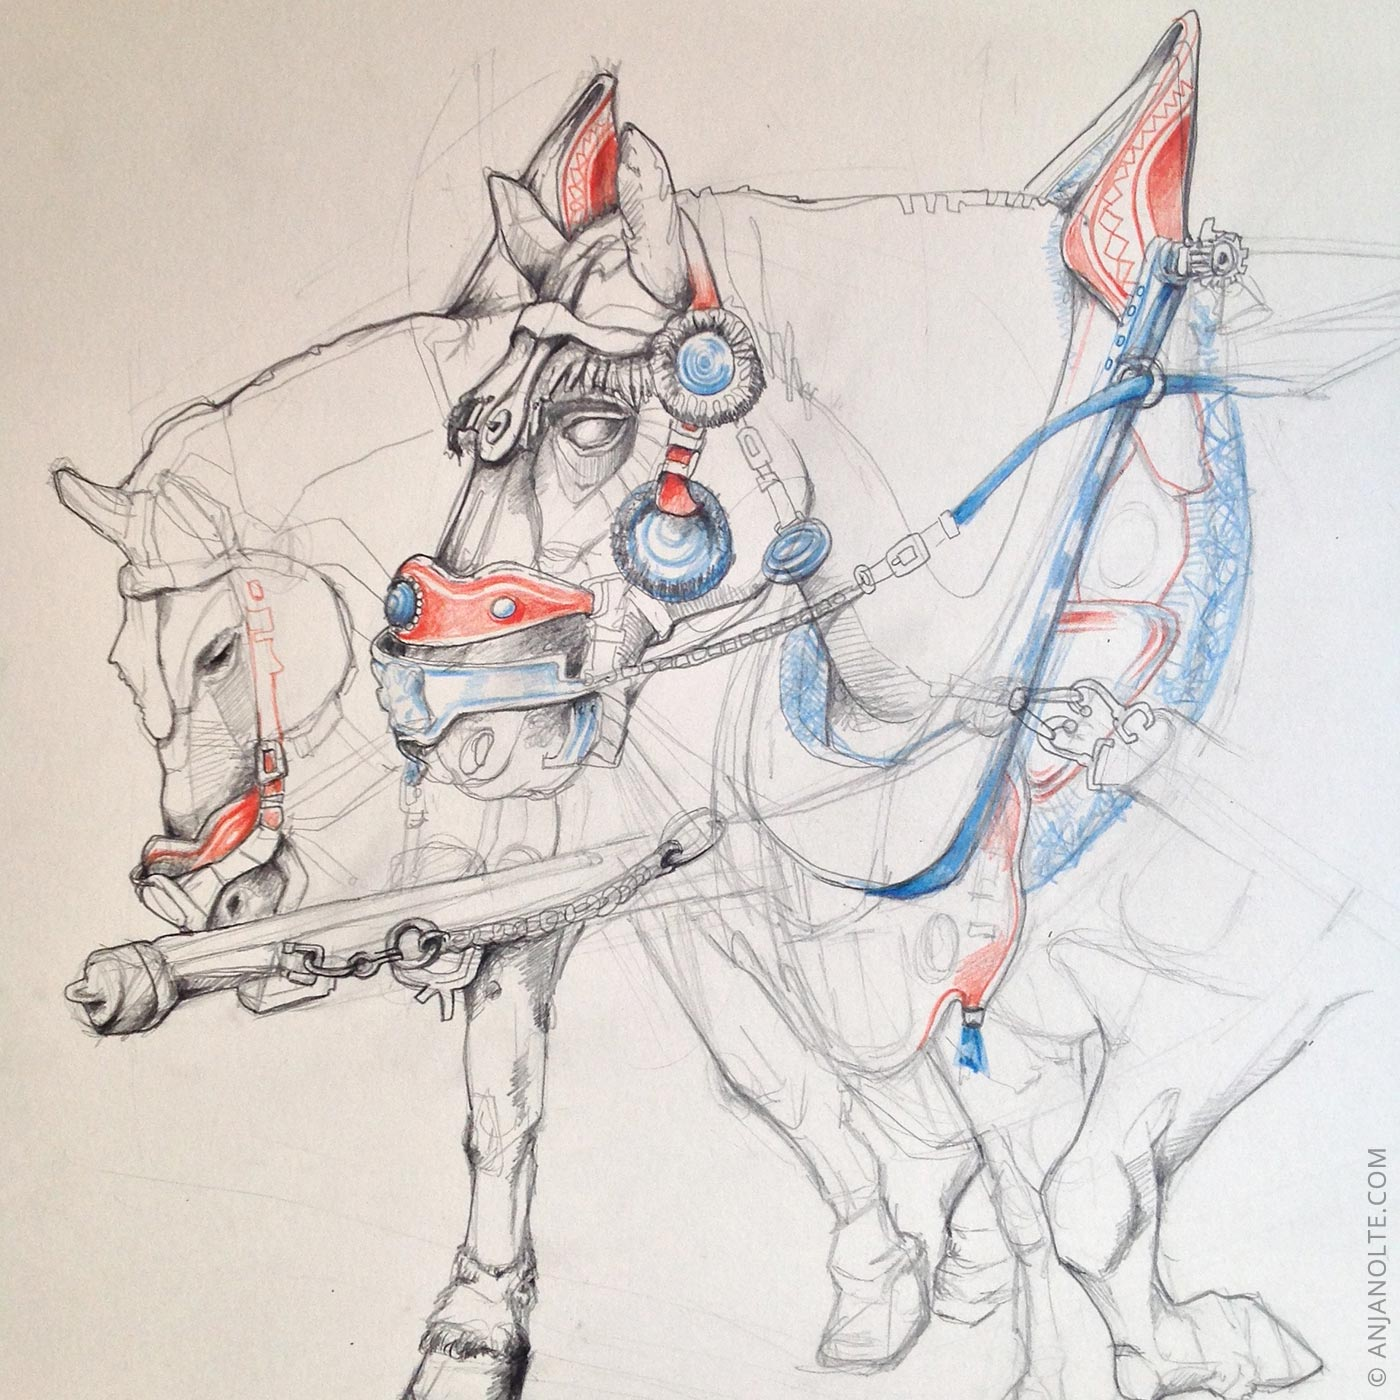 drawing of a team of horses, pencil on paper.